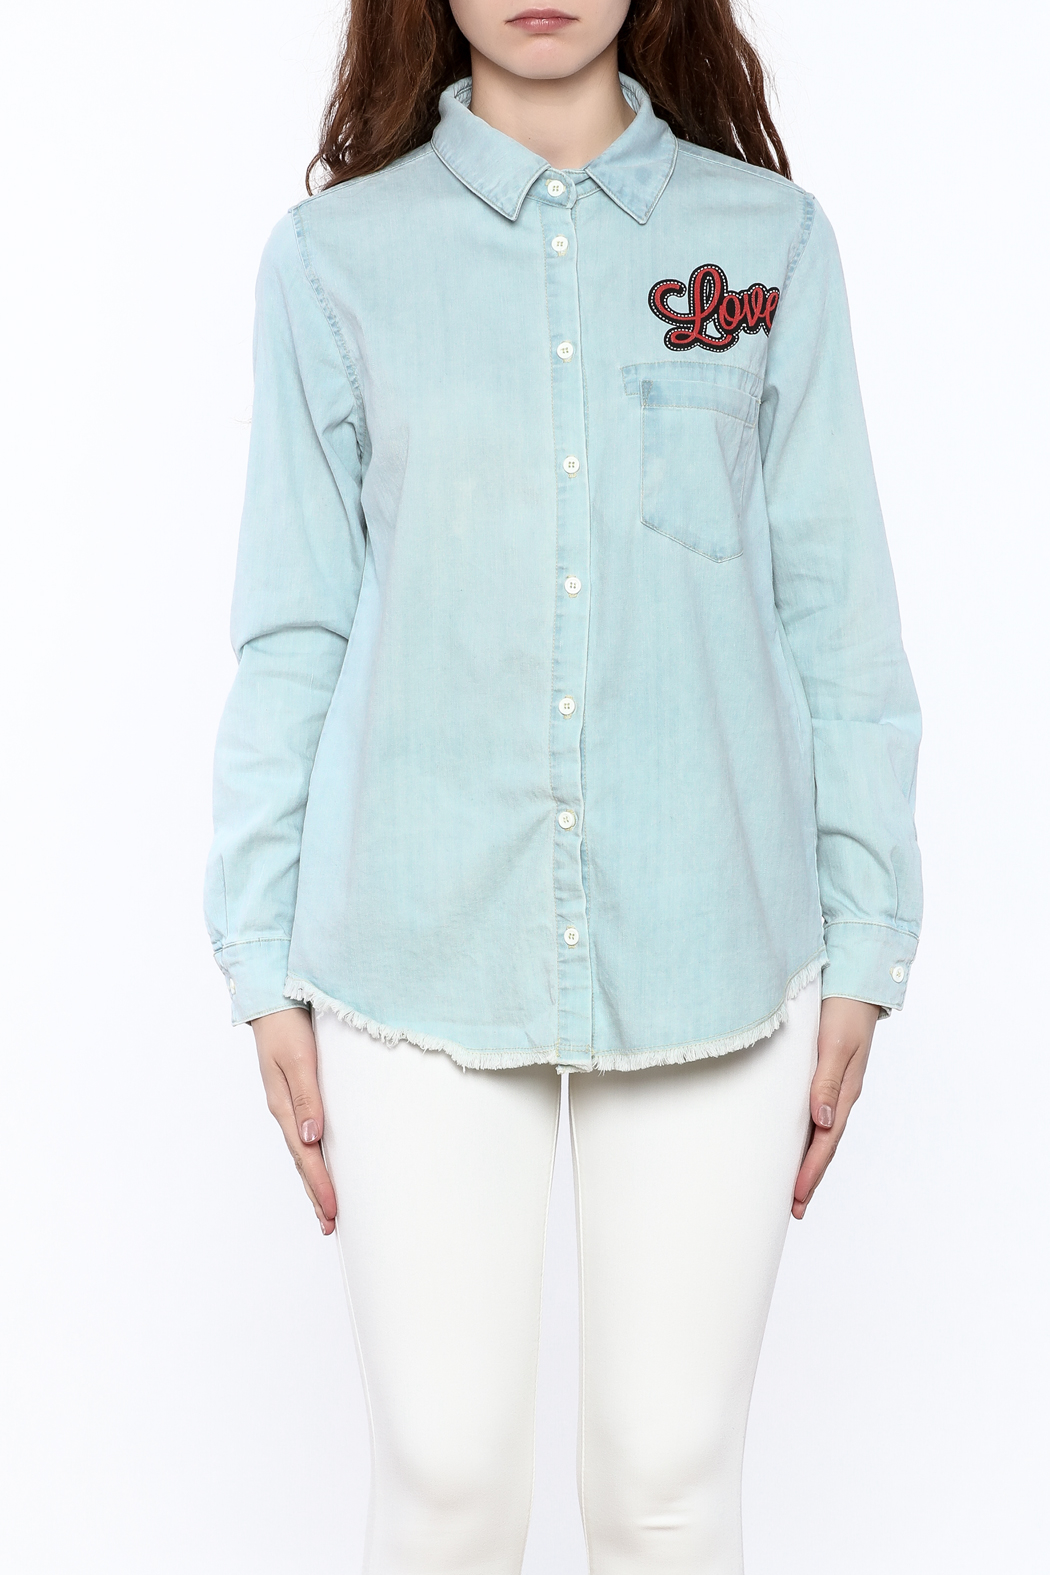 Lauren Moshi Denim Work Shirt - Side Cropped Image